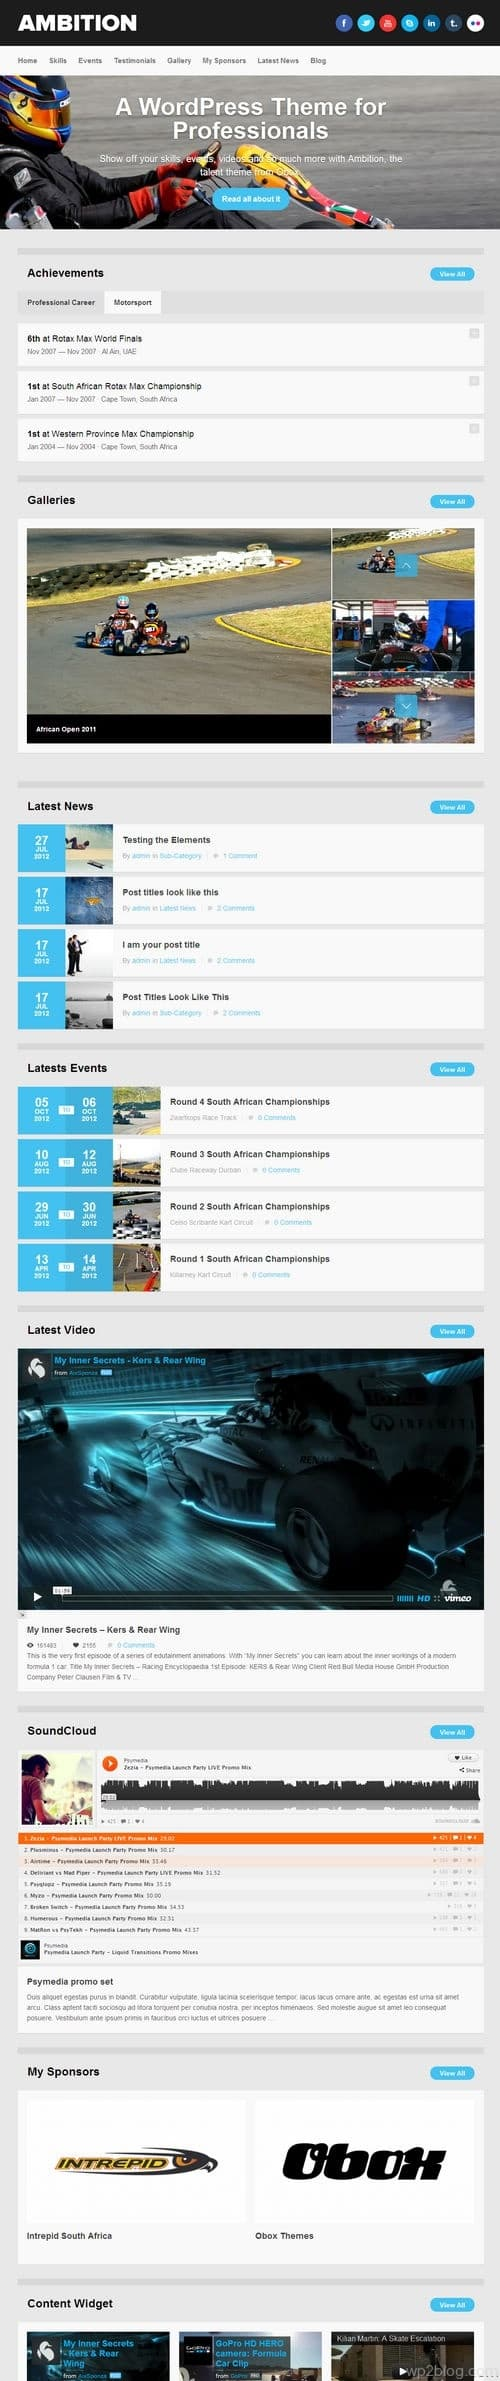 Ambition WordPress Theme